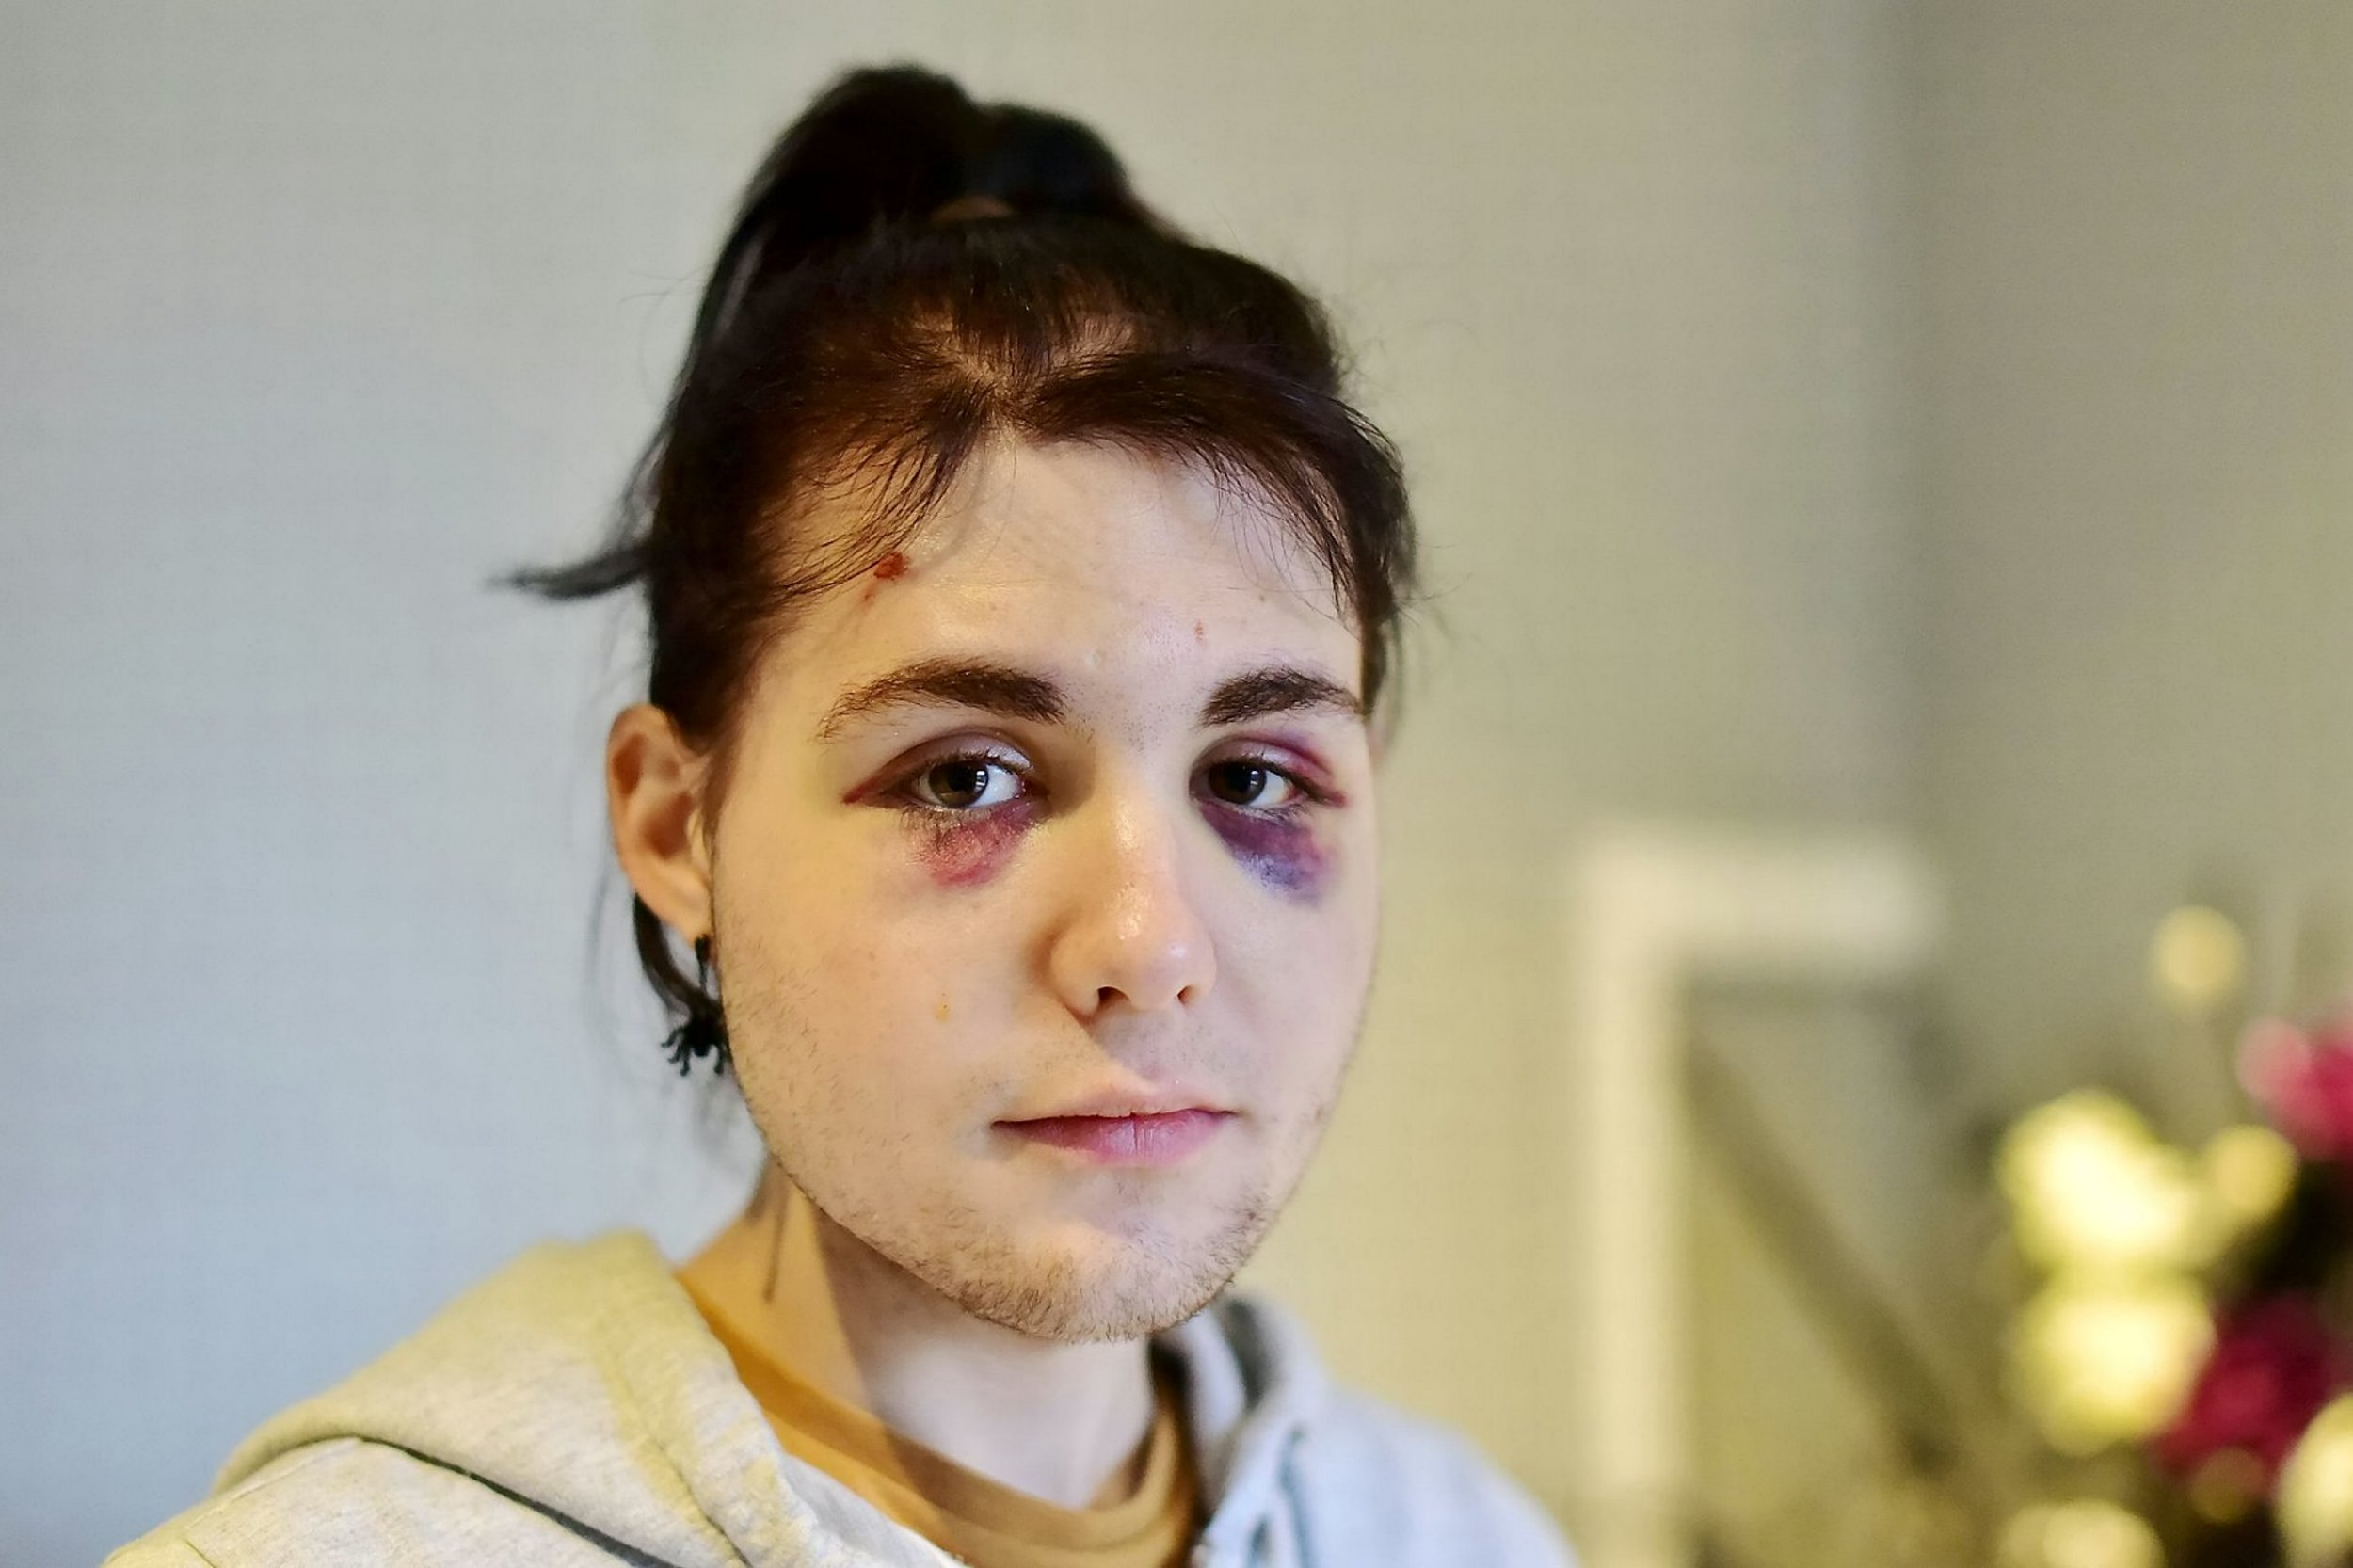 Kydis Zellinger, 18, was the victim of a homophobic attack by a stranger on the First Bus number 76 service near Parsons Street. Mr Zellinger received two black eyes.See story SWBRbeating. A teenager has spoken of the terrifying moment he was savagely beaten by a complete stranger in a vile homophobic attack. Kydis Zellinger said he feared for his life as a screaming stranger rained blows down on him in an unprovoked assault which the police are treating as a hate crime. The 18-year-old as two black eyes and is now too terrified to leave the house alone following the assault ? which he says fellow bus passengers did nothing to stop.Kydis described how the ten other passengers on the bus didn't intervene when the man, holding a can of larger, followed him upstairs and started abusing him before punching him repeatedly in the face.